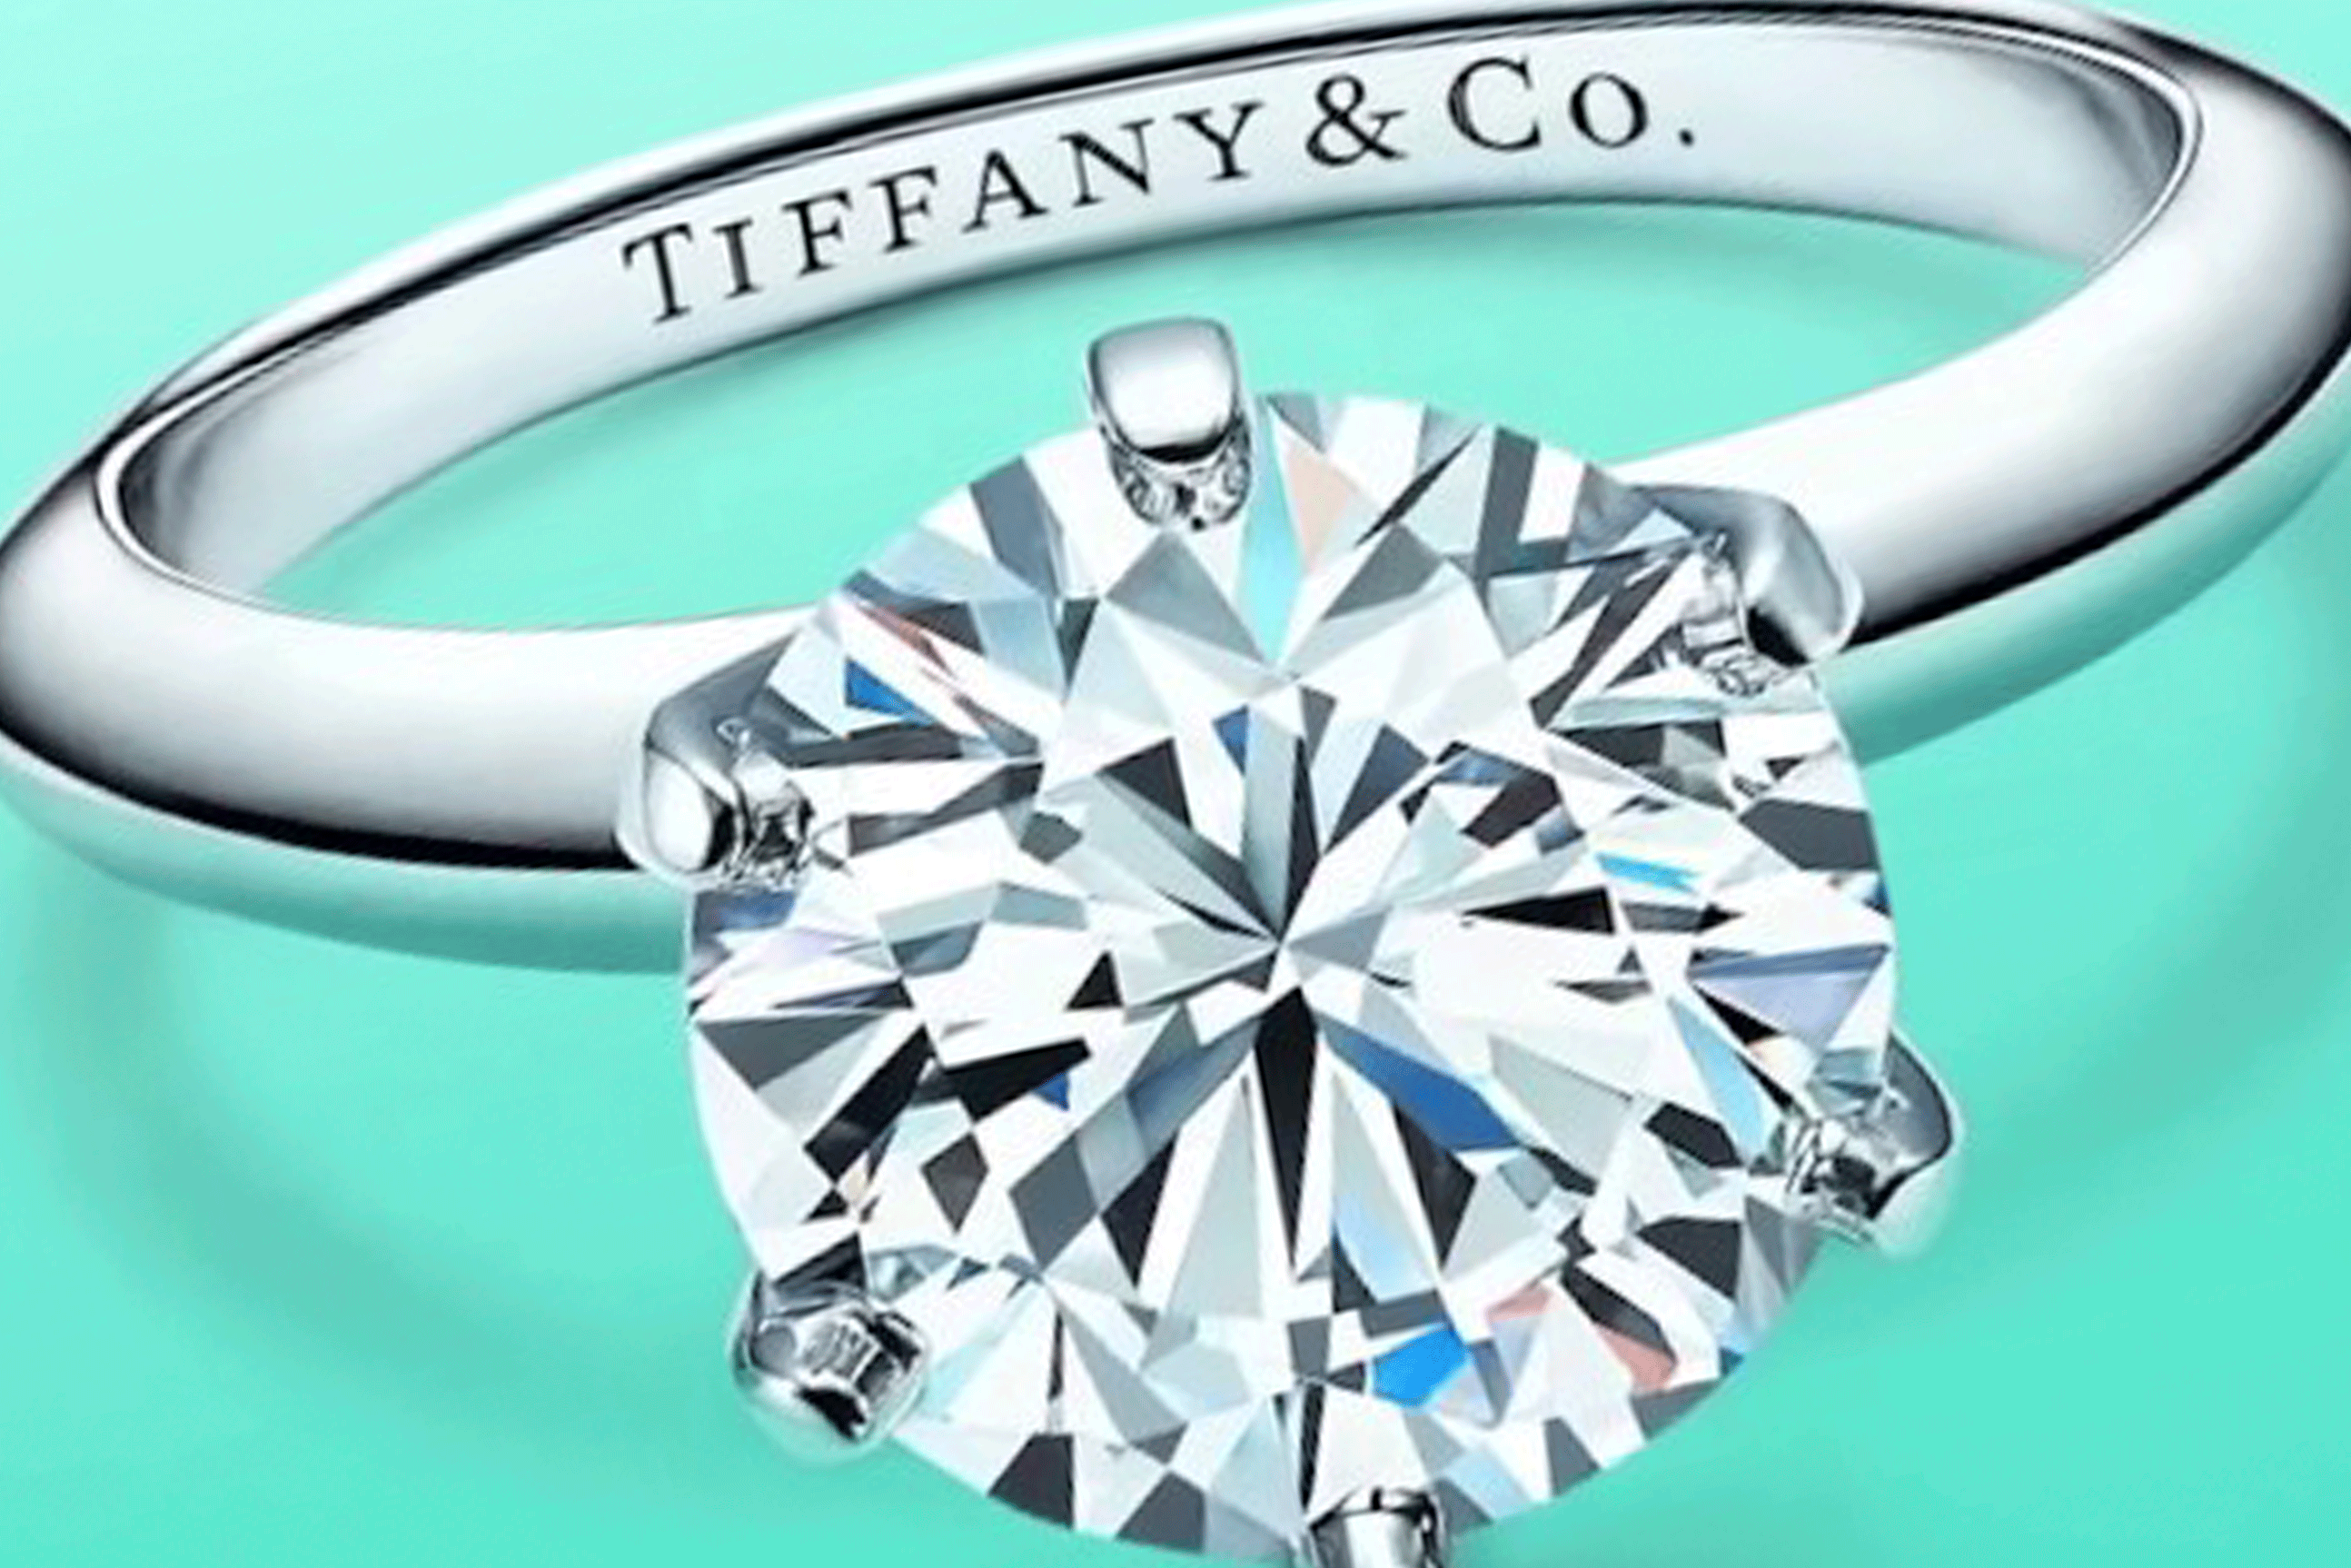 Tiffany Shares Gain Amid Reports of Improved LVMH Takeover Approach